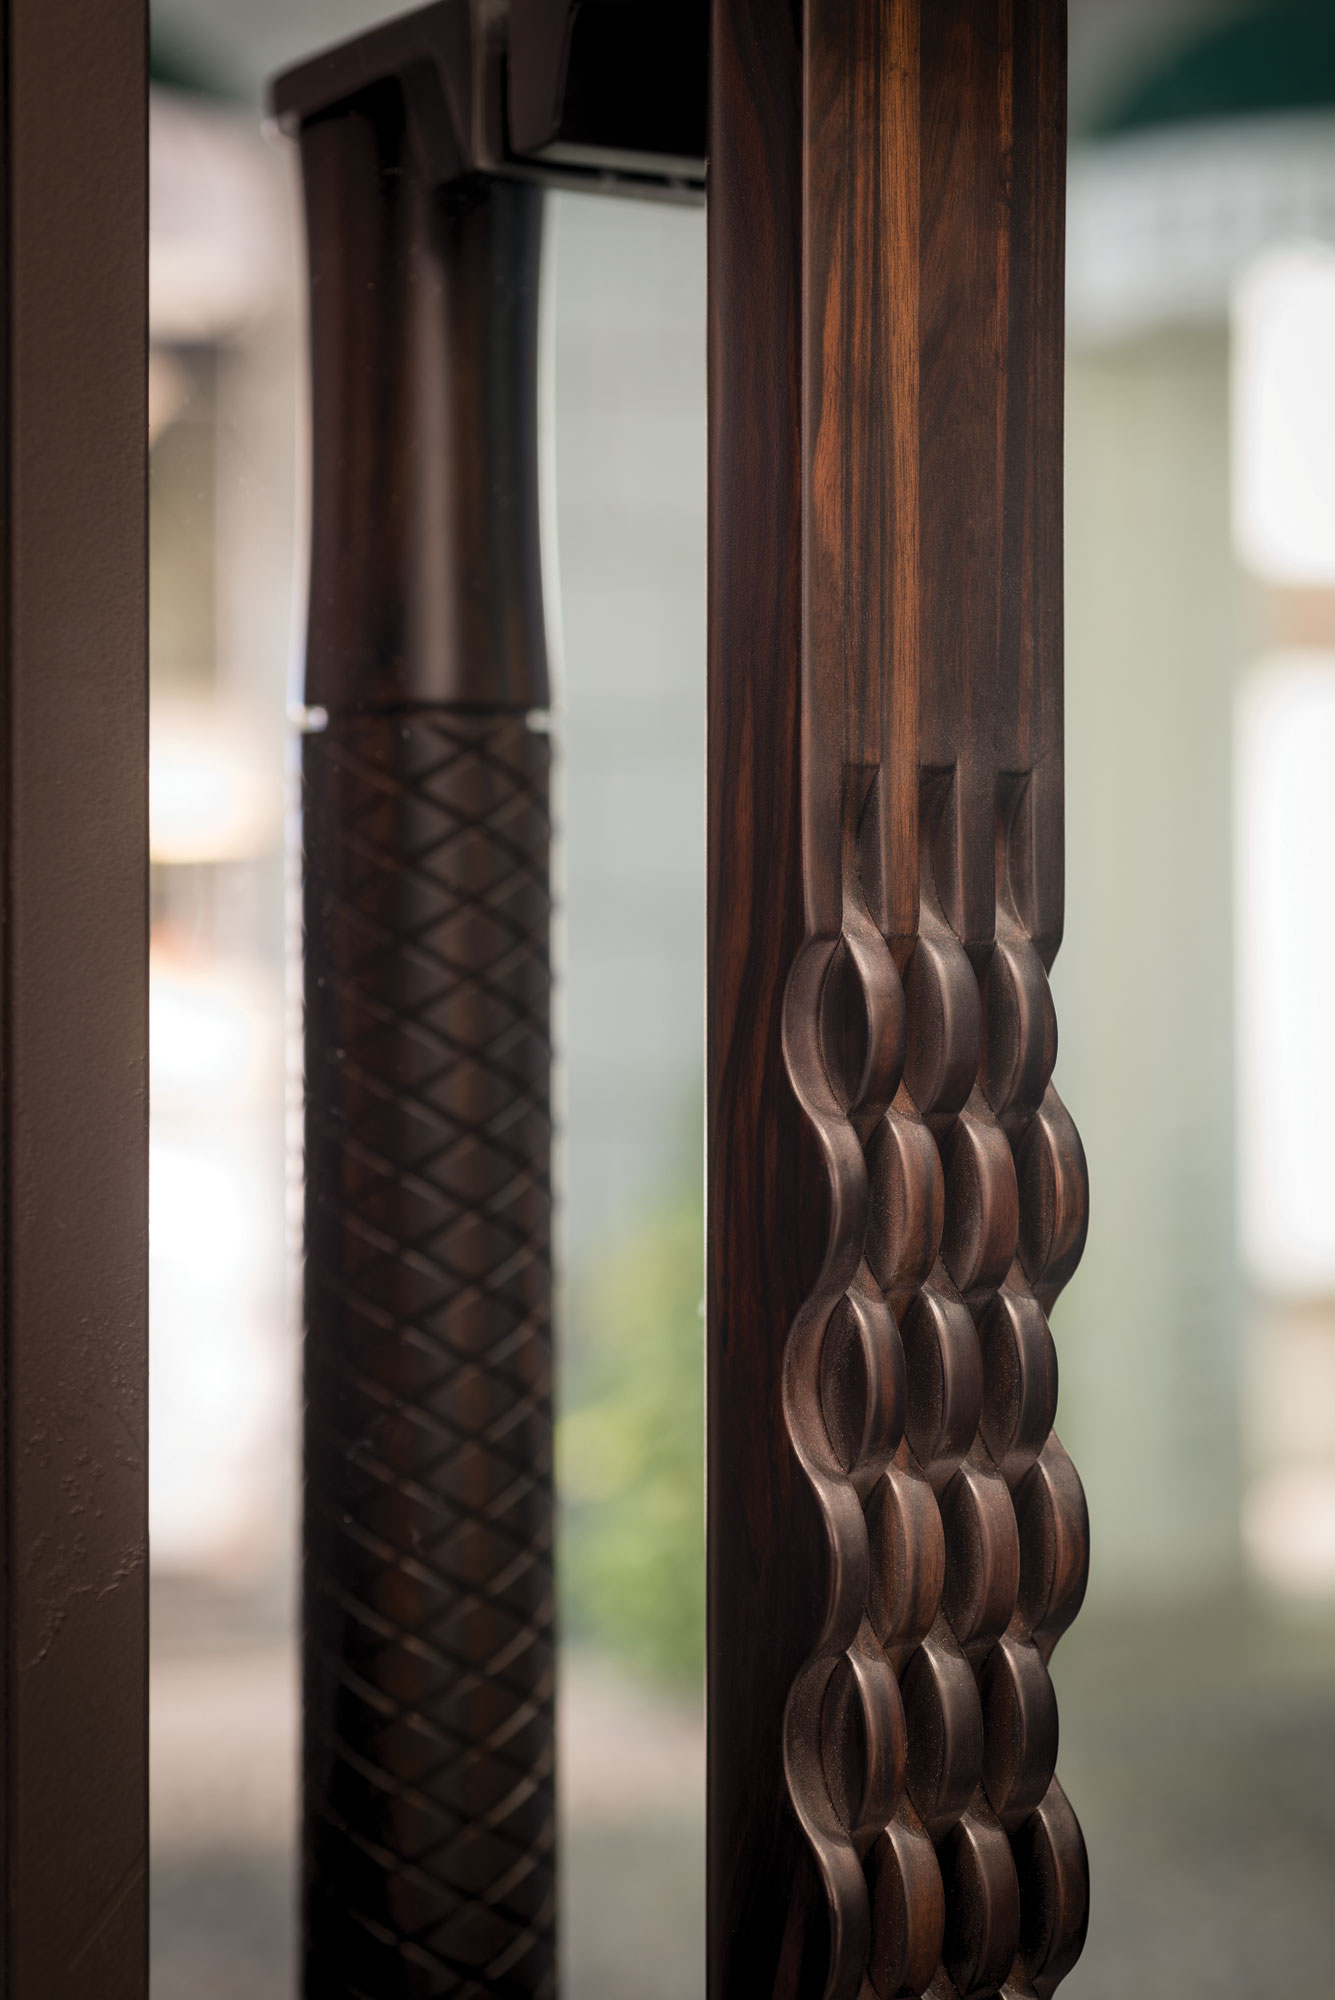 product details of Bottega Ghianda at Milan Design Week